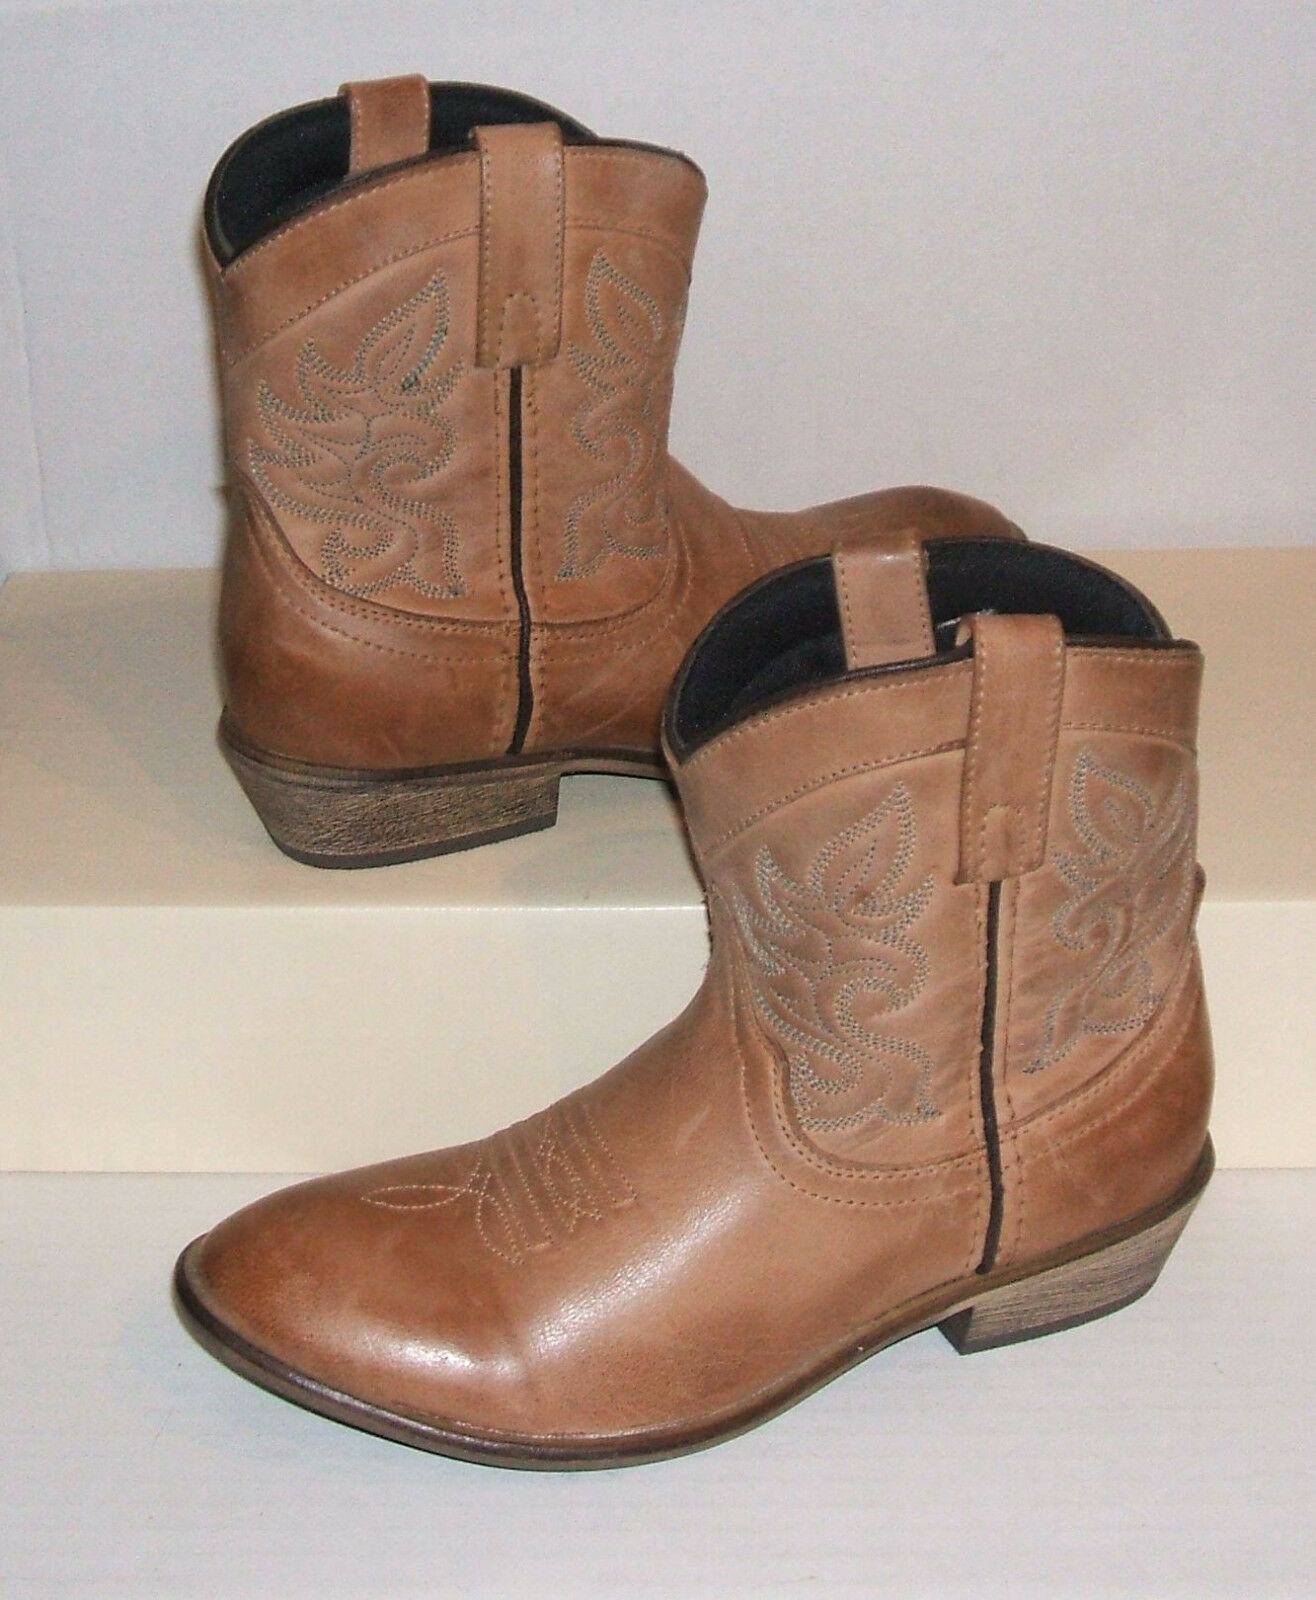 DINGO Women's Light Brown Leather Western Cowgirl Pull-On Ankle Boots 7.5 M NEW